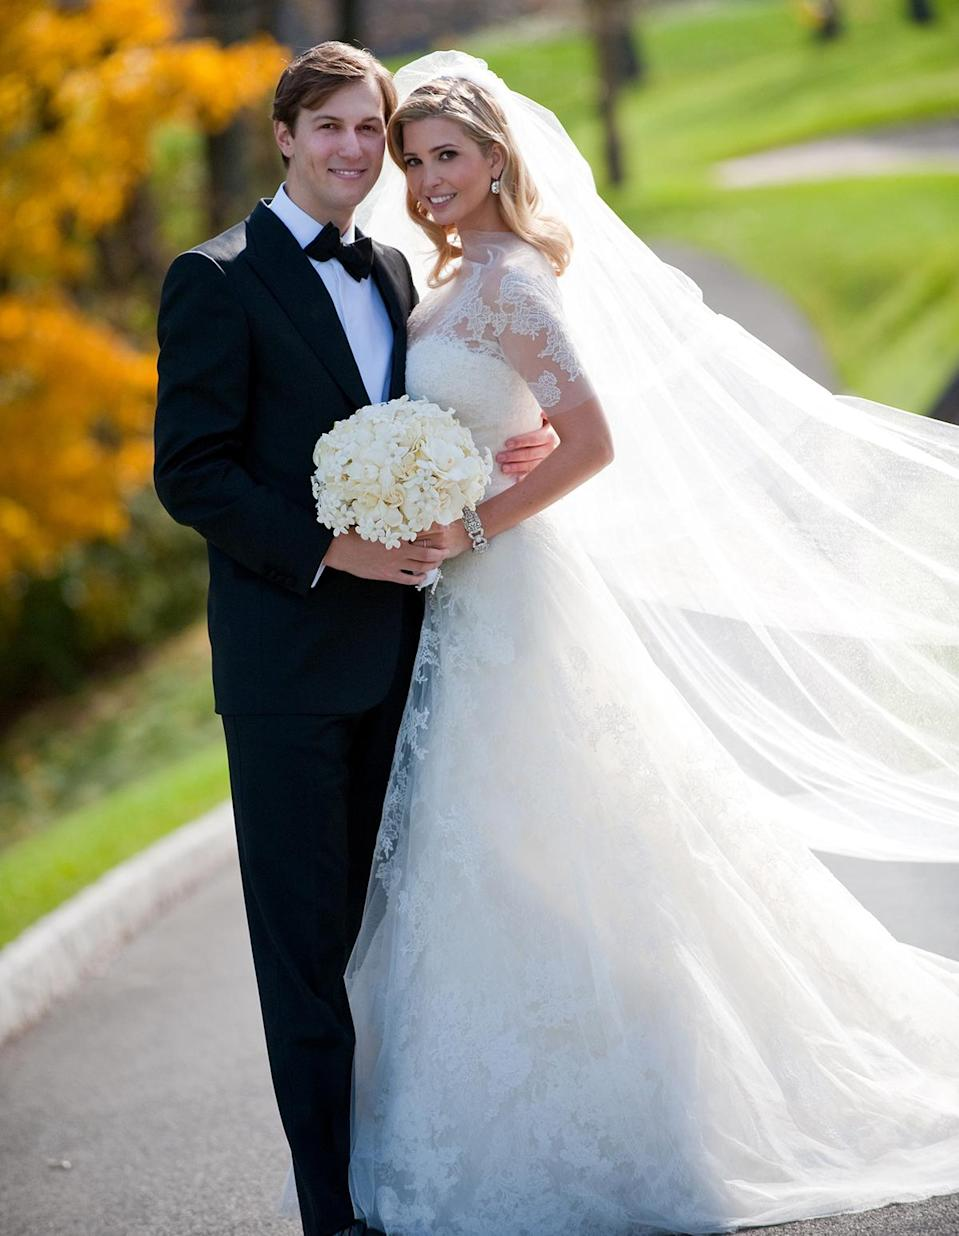 """<p>To wed Jared Kushner in 2009, <a href=""""https://people.com/style/the-inside-scoop-on-ivanka-trumps-wedding-gown-and-hair/"""" rel=""""nofollow noopener"""" target=""""_blank"""" data-ylk=""""slk:Trump worked with Wang on a custom couture gown"""" class=""""link rapid-noclick-resp"""">Trump worked with Wang on a custom couture gown</a> inspired by <a href=""""https://people.com/royals/inside-grace-kellys-fairytale-wedding-to-prince-rainer-61-years-later/"""" rel=""""nofollow noopener"""" target=""""_blank"""" data-ylk=""""slk:Grace Kelly's wedding dress"""" class=""""link rapid-noclick-resp"""">Grace Kelly's wedding dress</a>.</p>"""